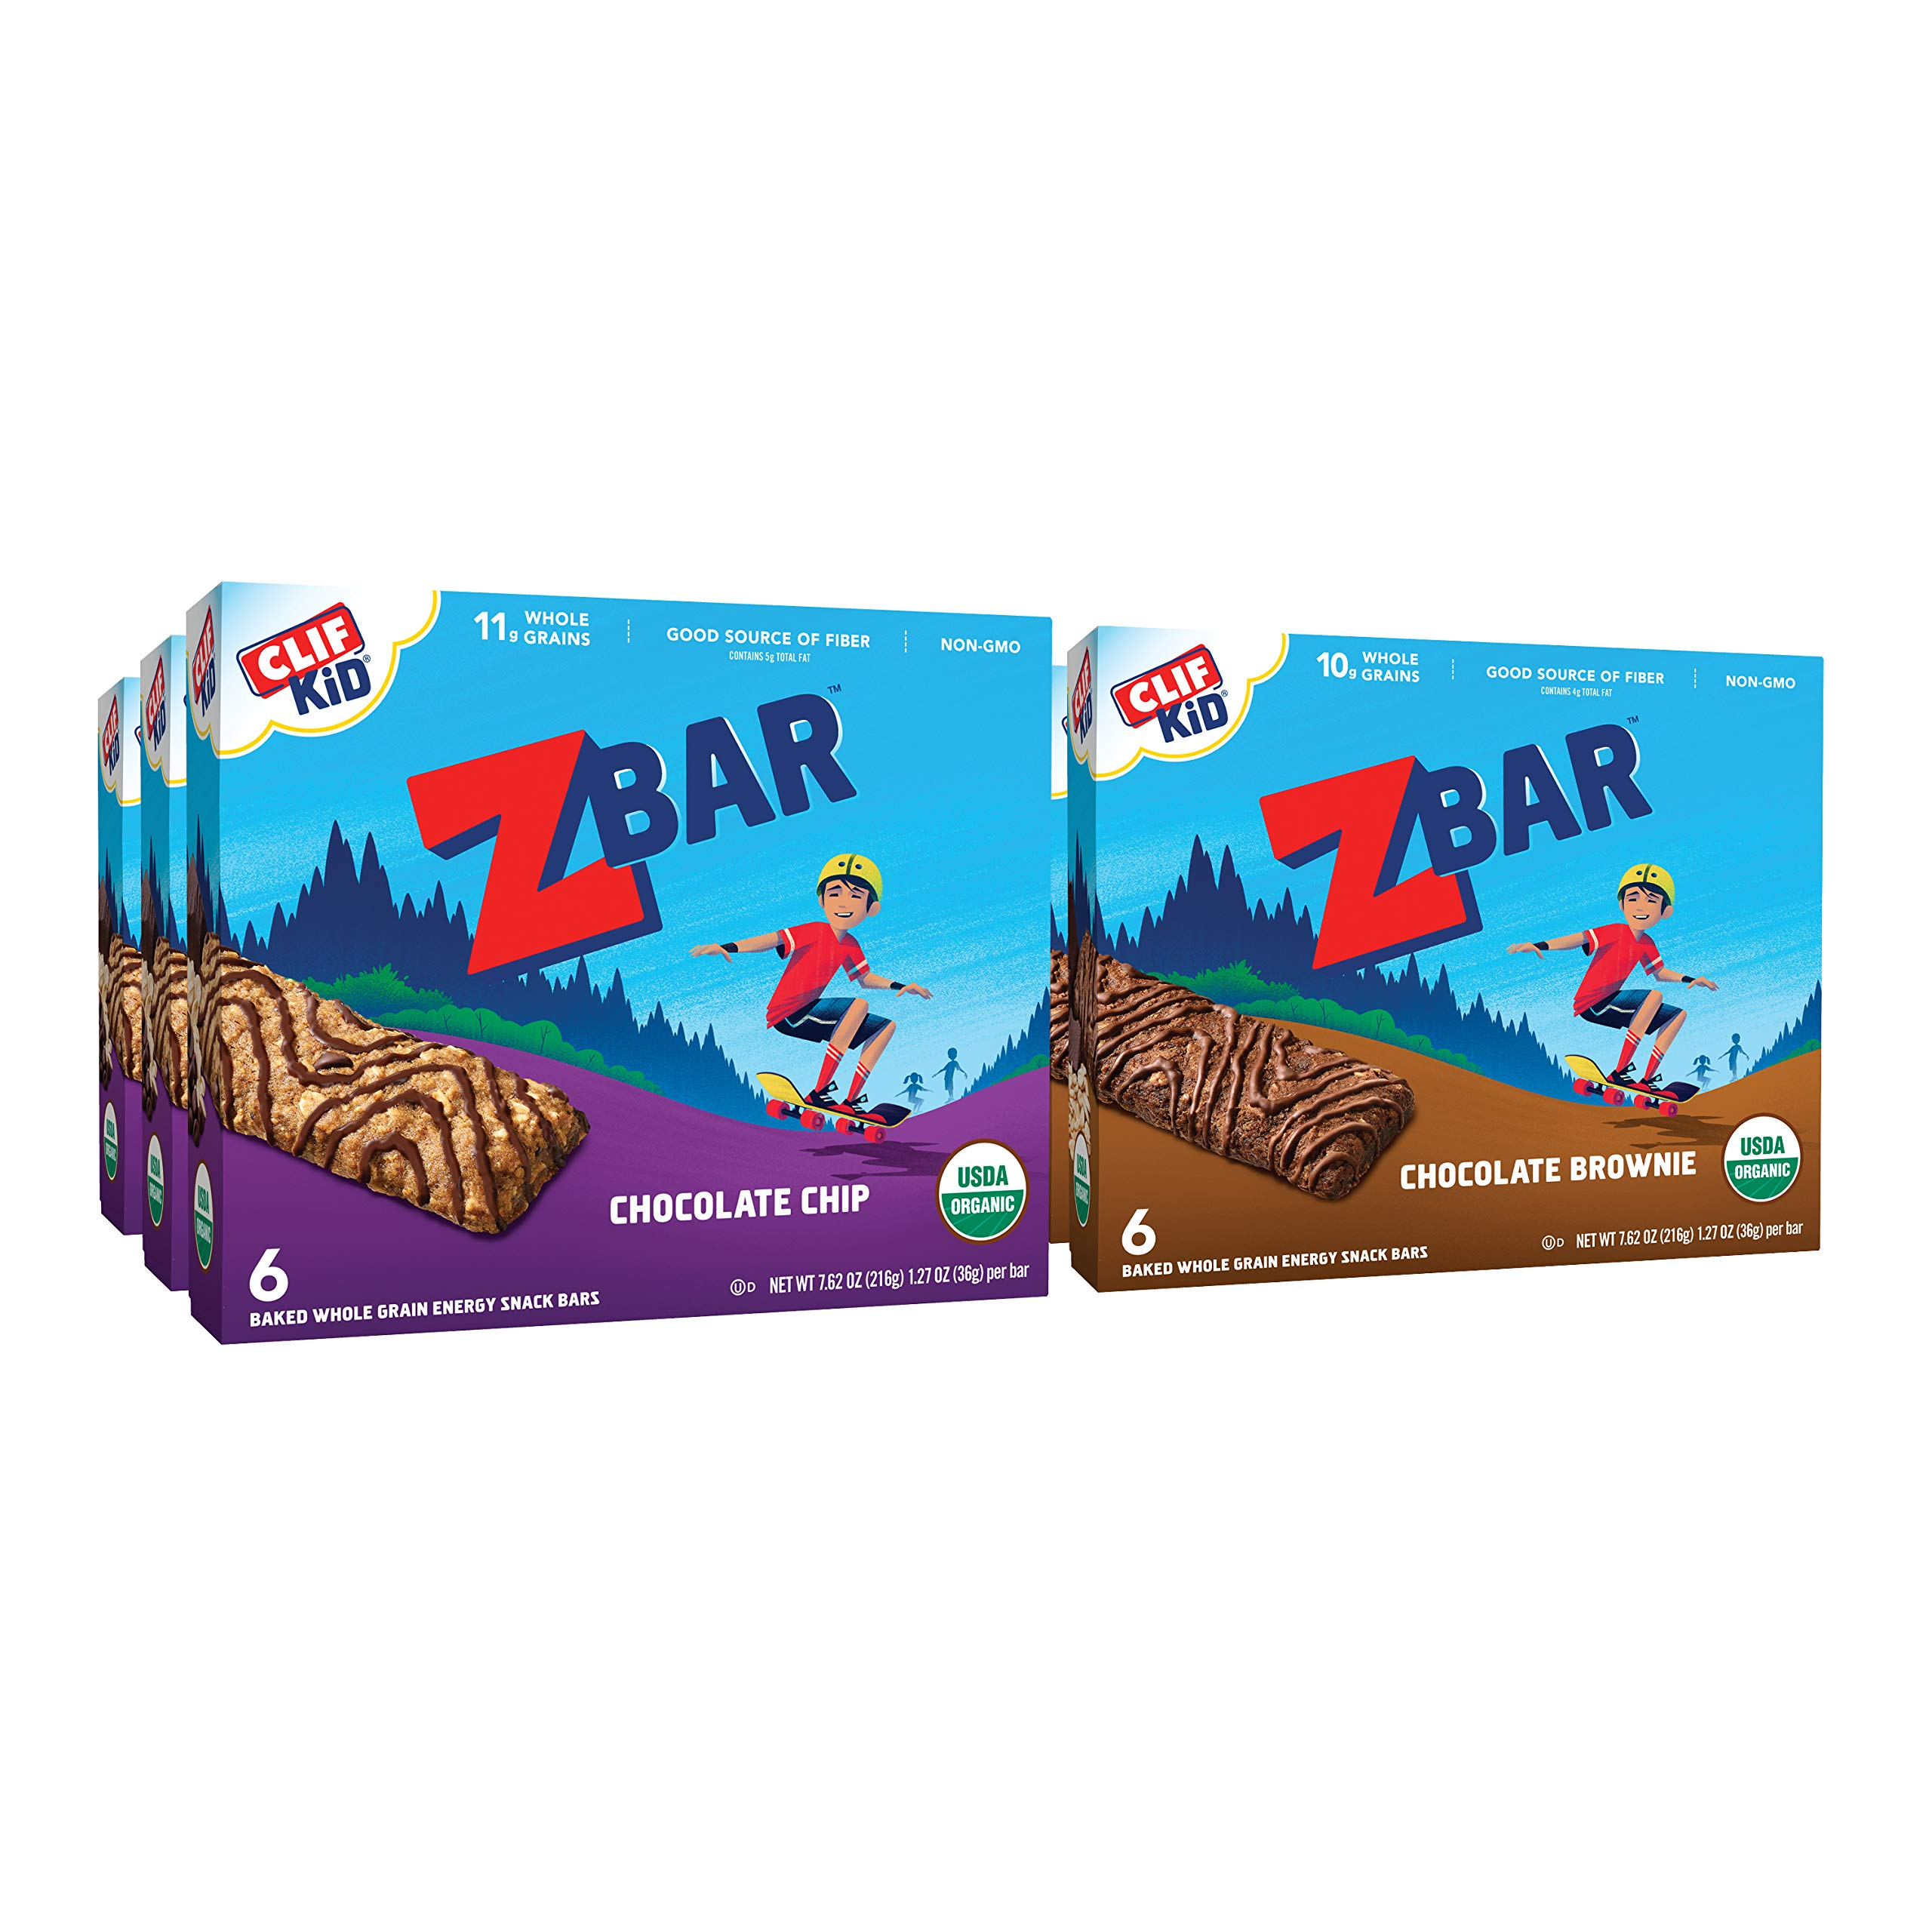 Clif Kid ZBAR - Organic Energy Bars - Value Pack - (1.27 Ounce Snack Bars, 36 Count) by Clif Bar